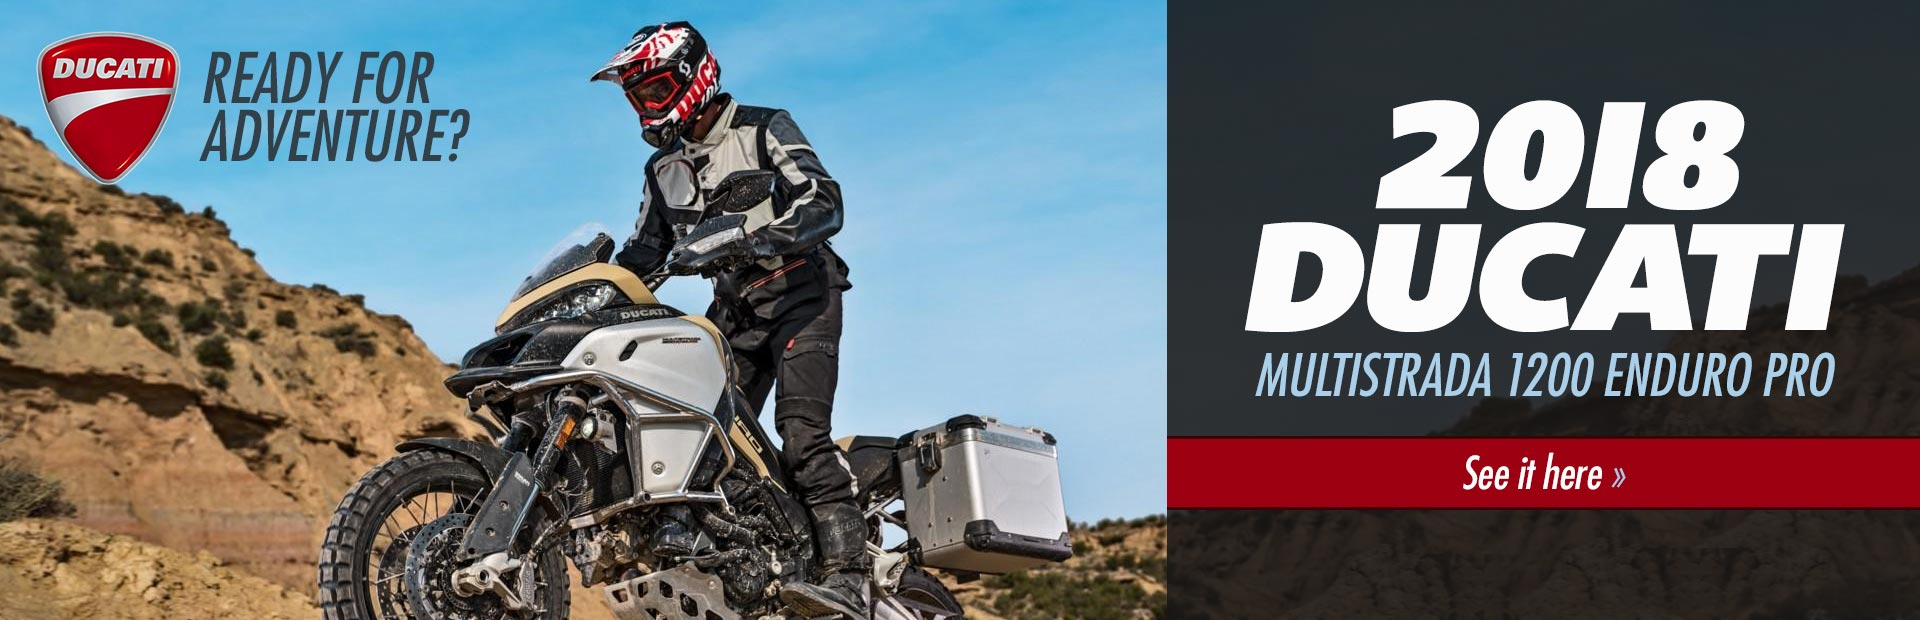 2018 Ducati Multistrada 1200 Enduro Pro: Click here to view the model.